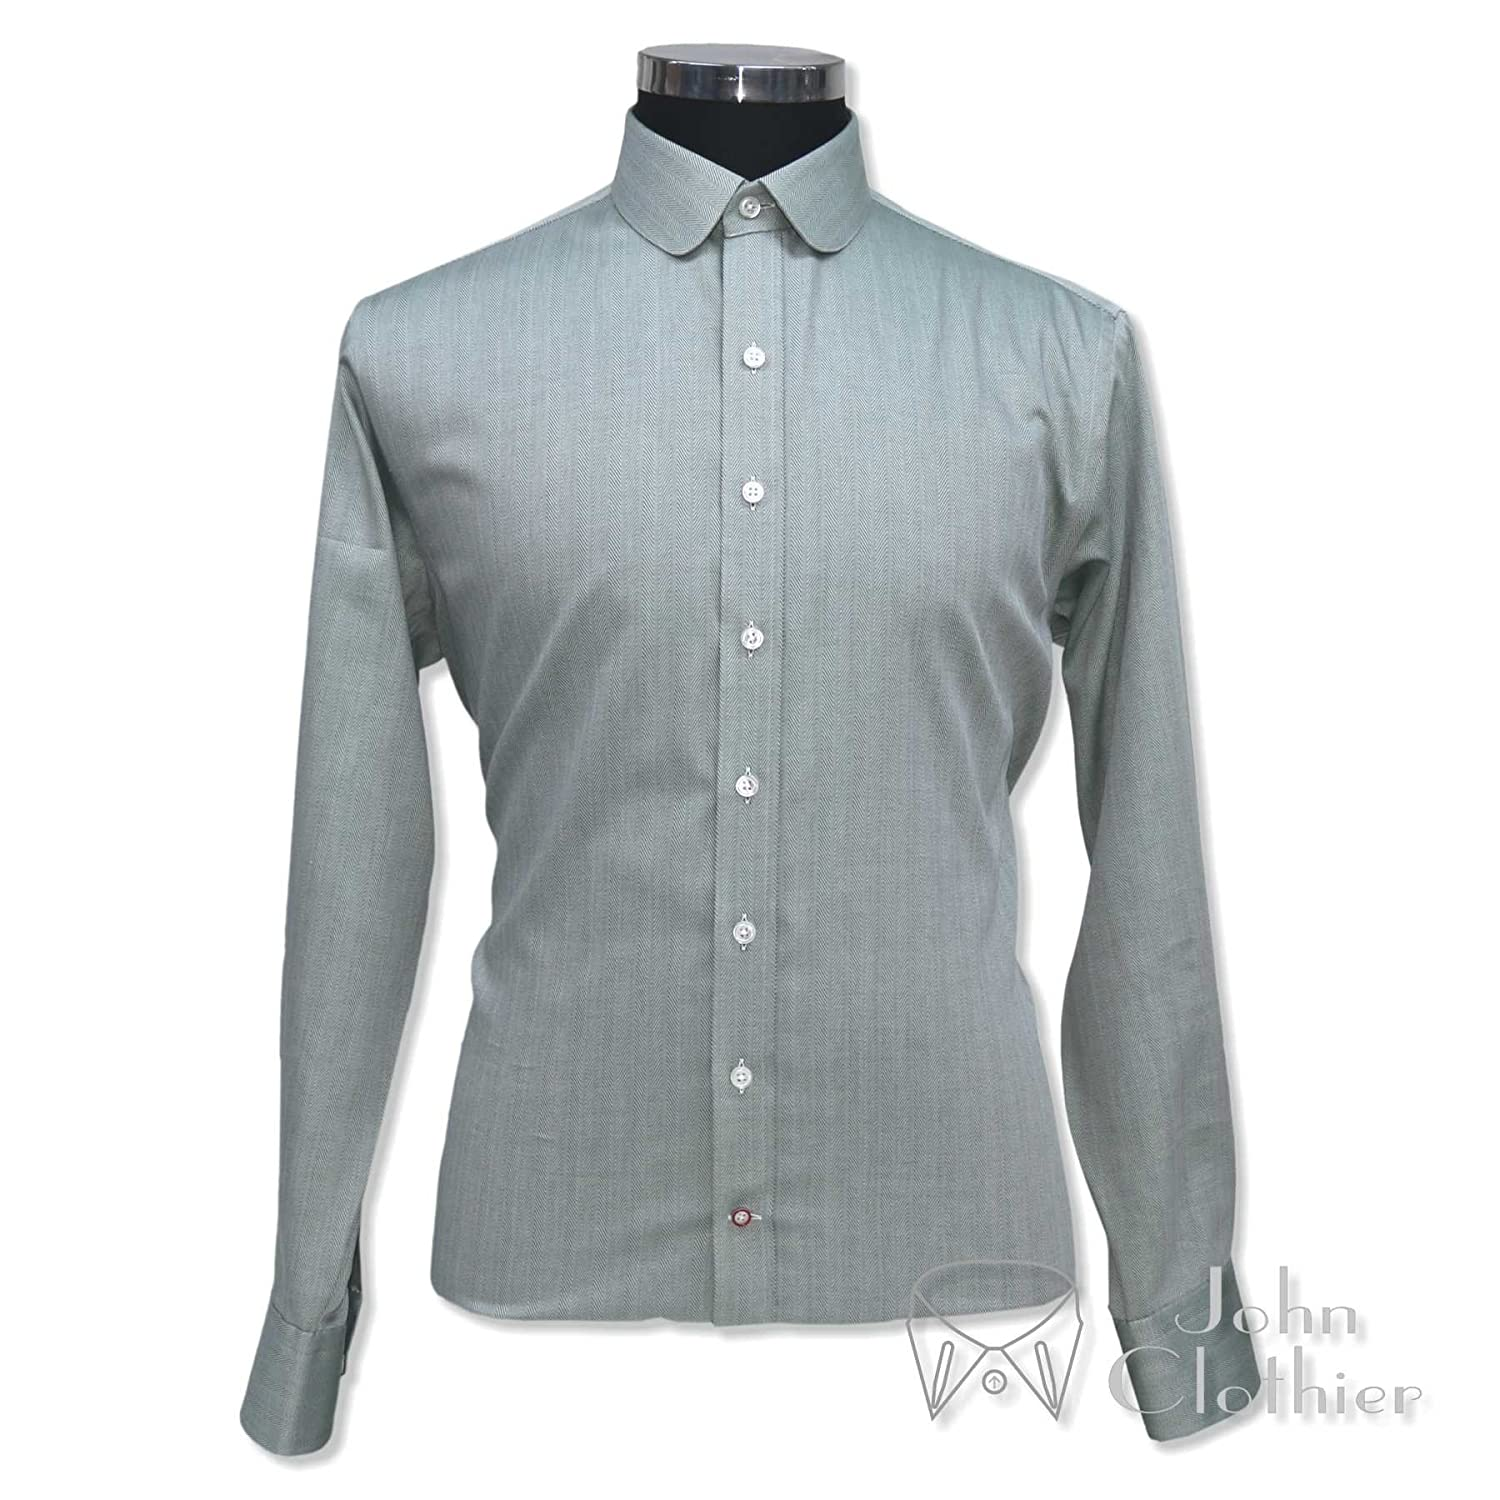 WhitePilotShirts Round Collar Mens Shirt Green Herringbone 100/% Cotton Penny Collar Peaky Blinders Gents 100-27